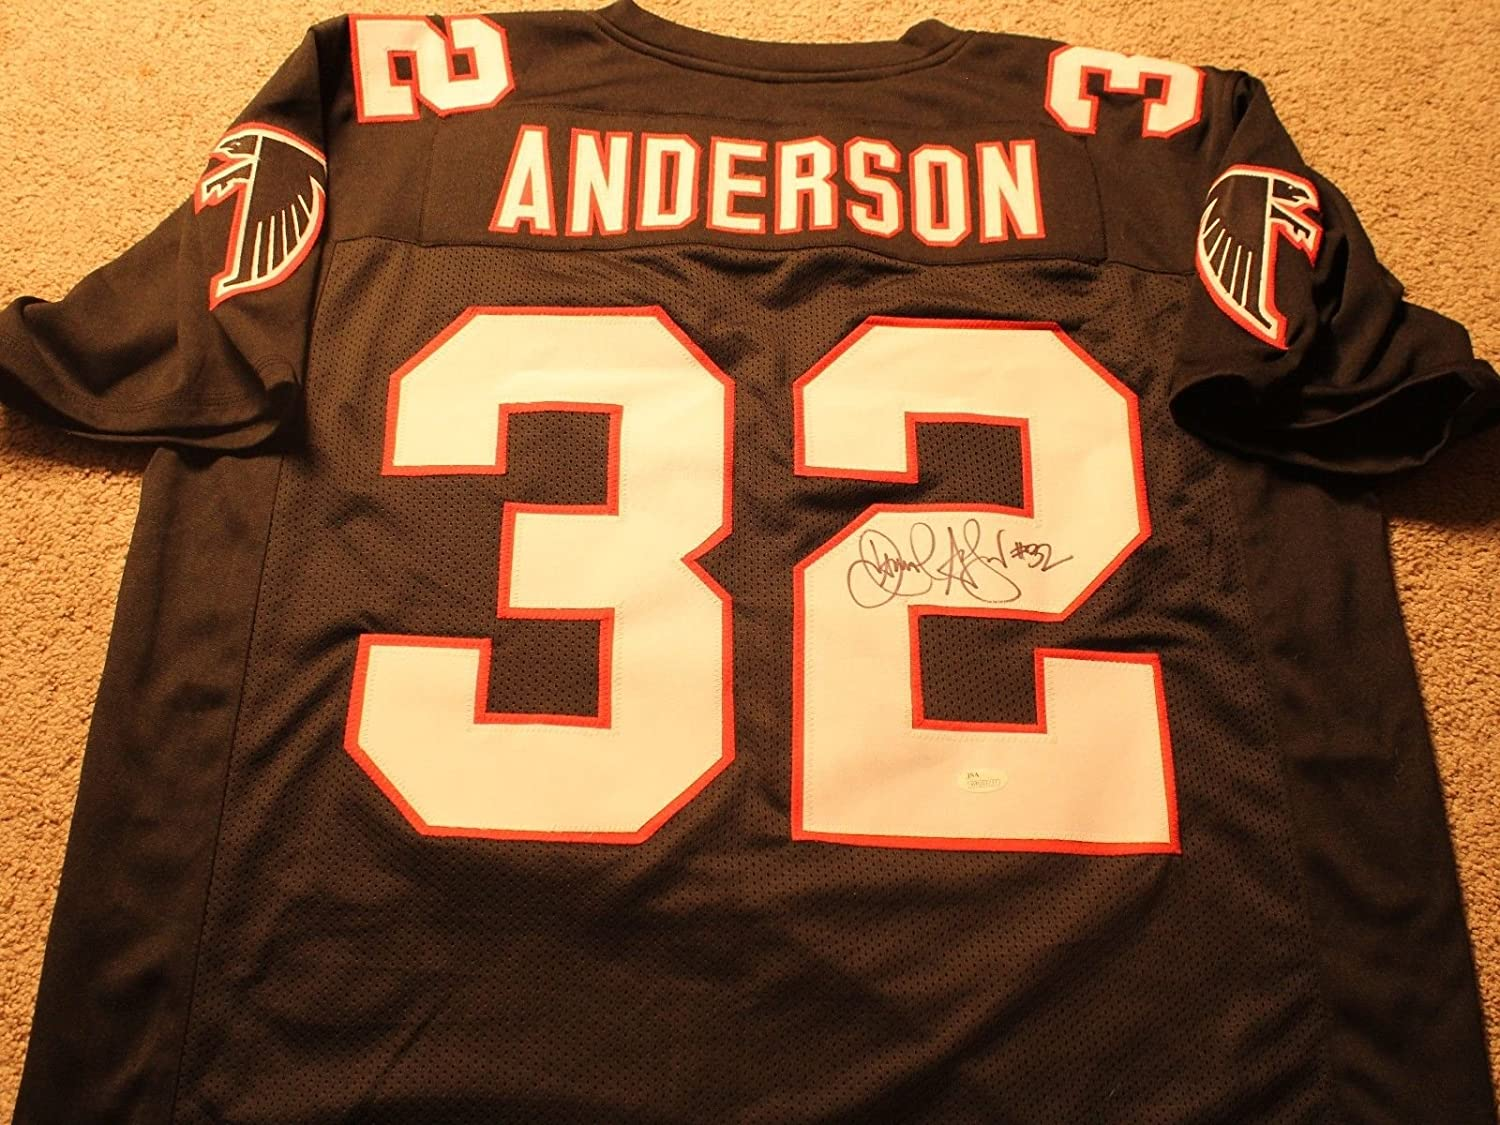 Jamal Anderson Autographed signed Atlanta Falcons Jersey